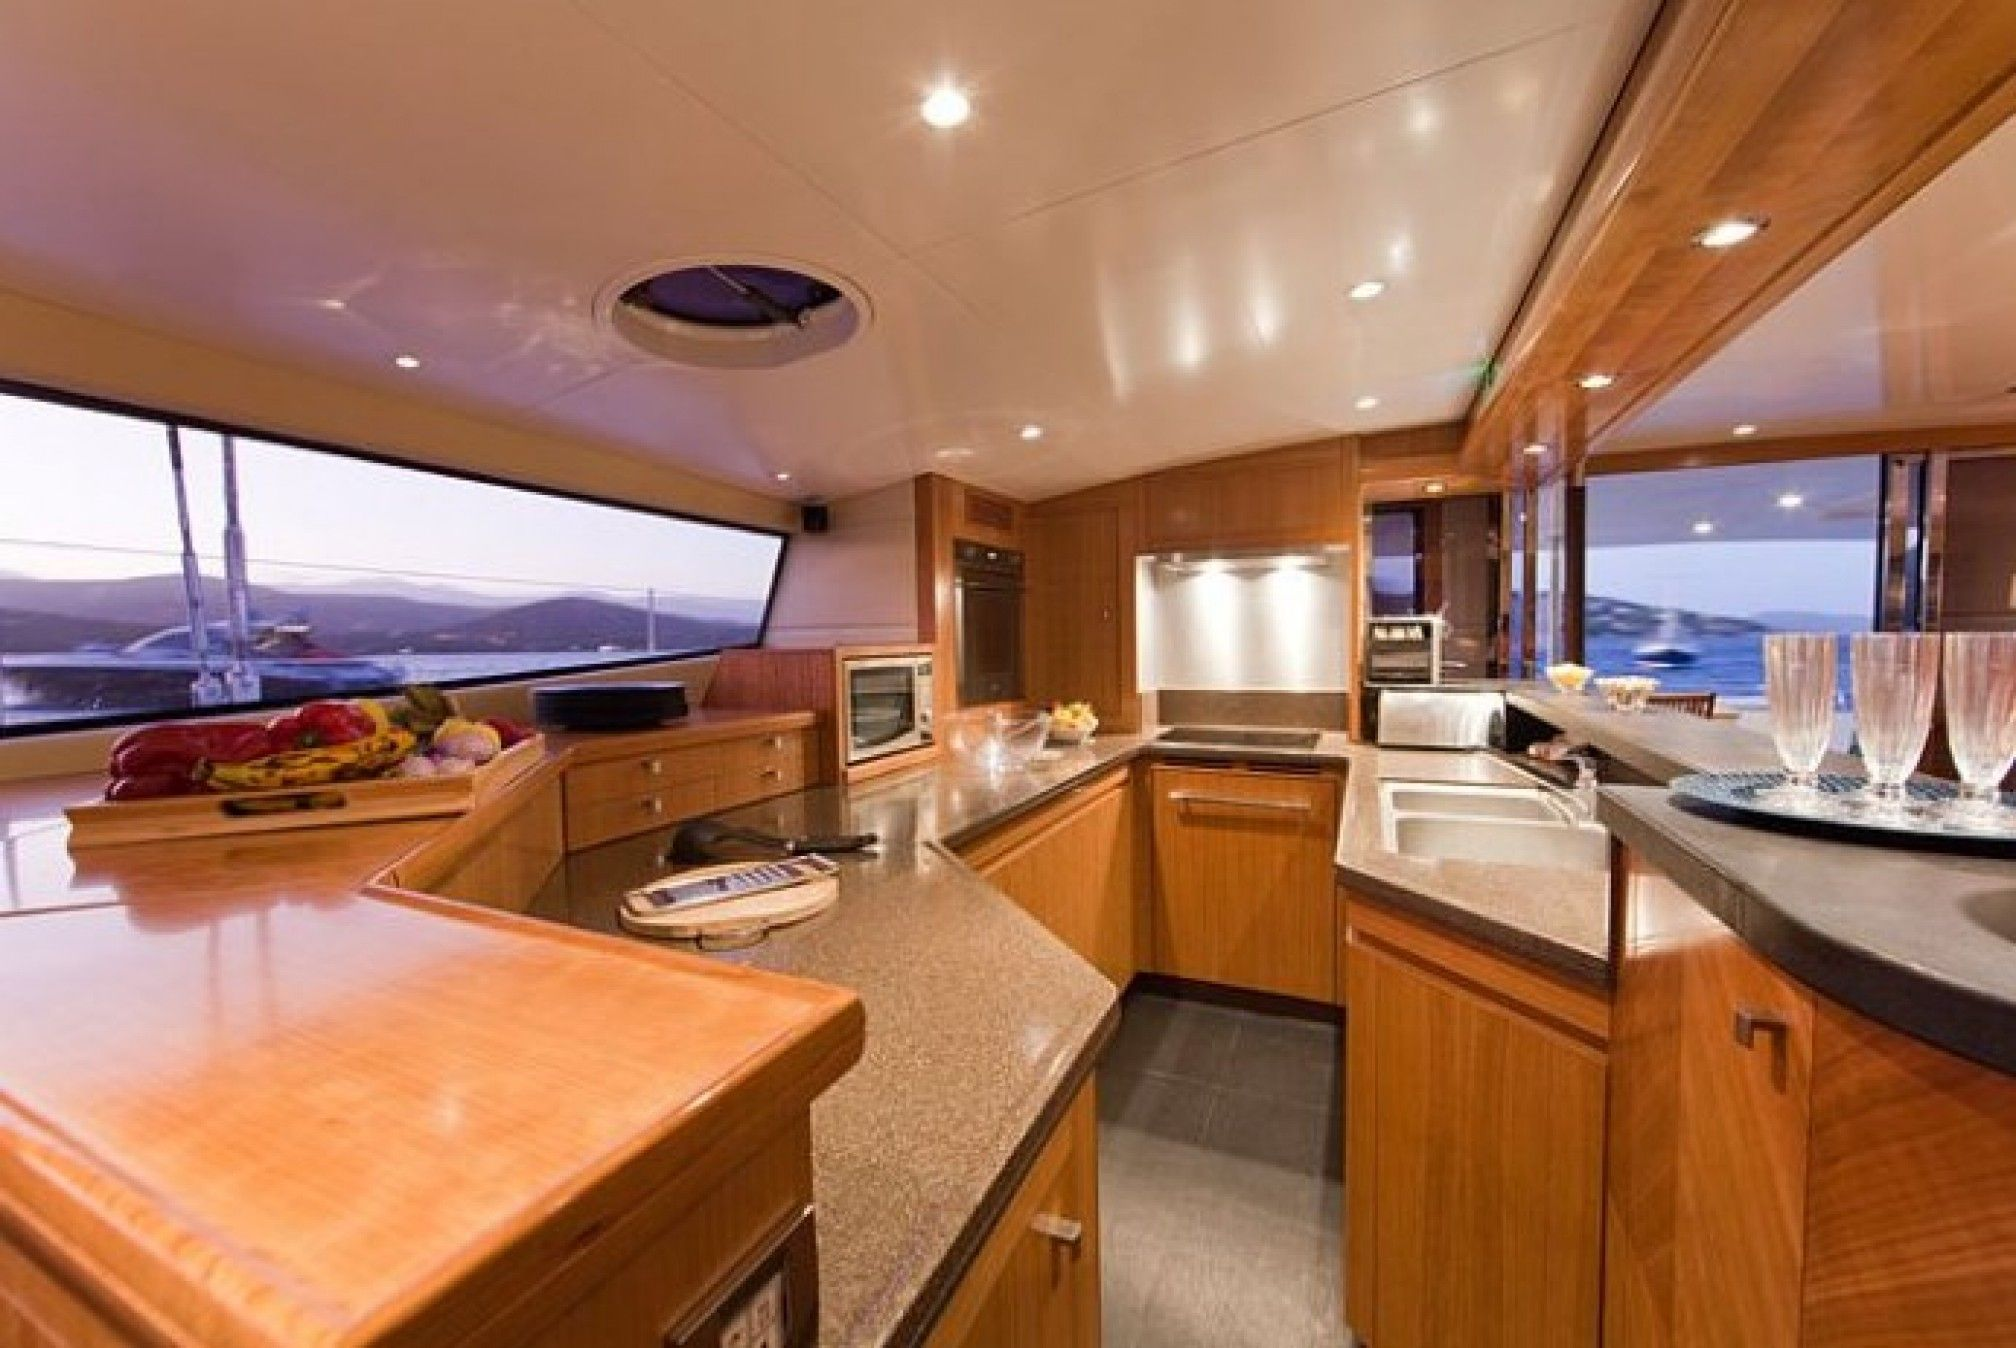 MobyDick Luxury Catamaran Kitchen